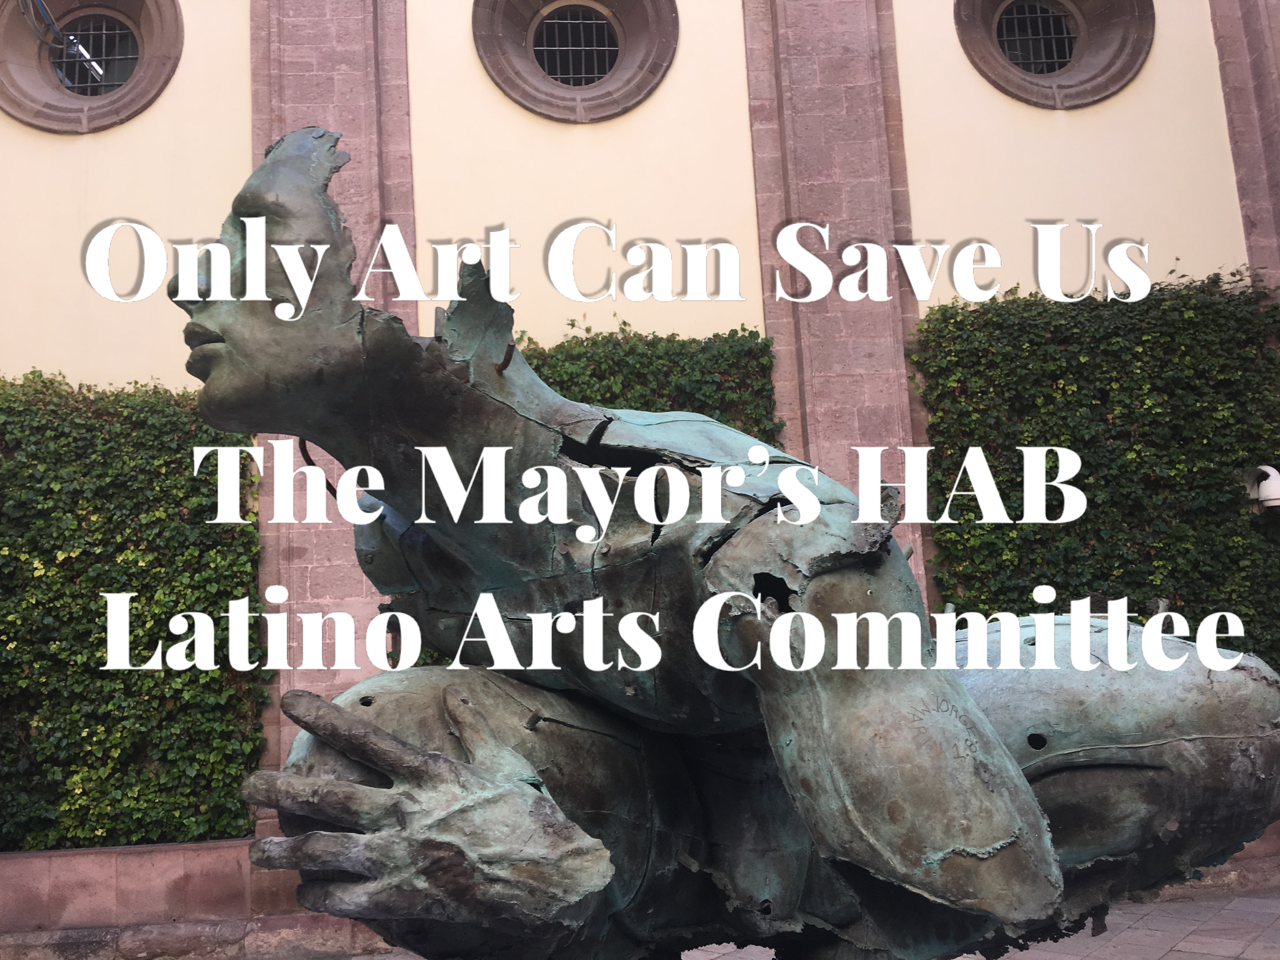 Houston Mayor's Hispanic Advisory Board Latino Arts Committee